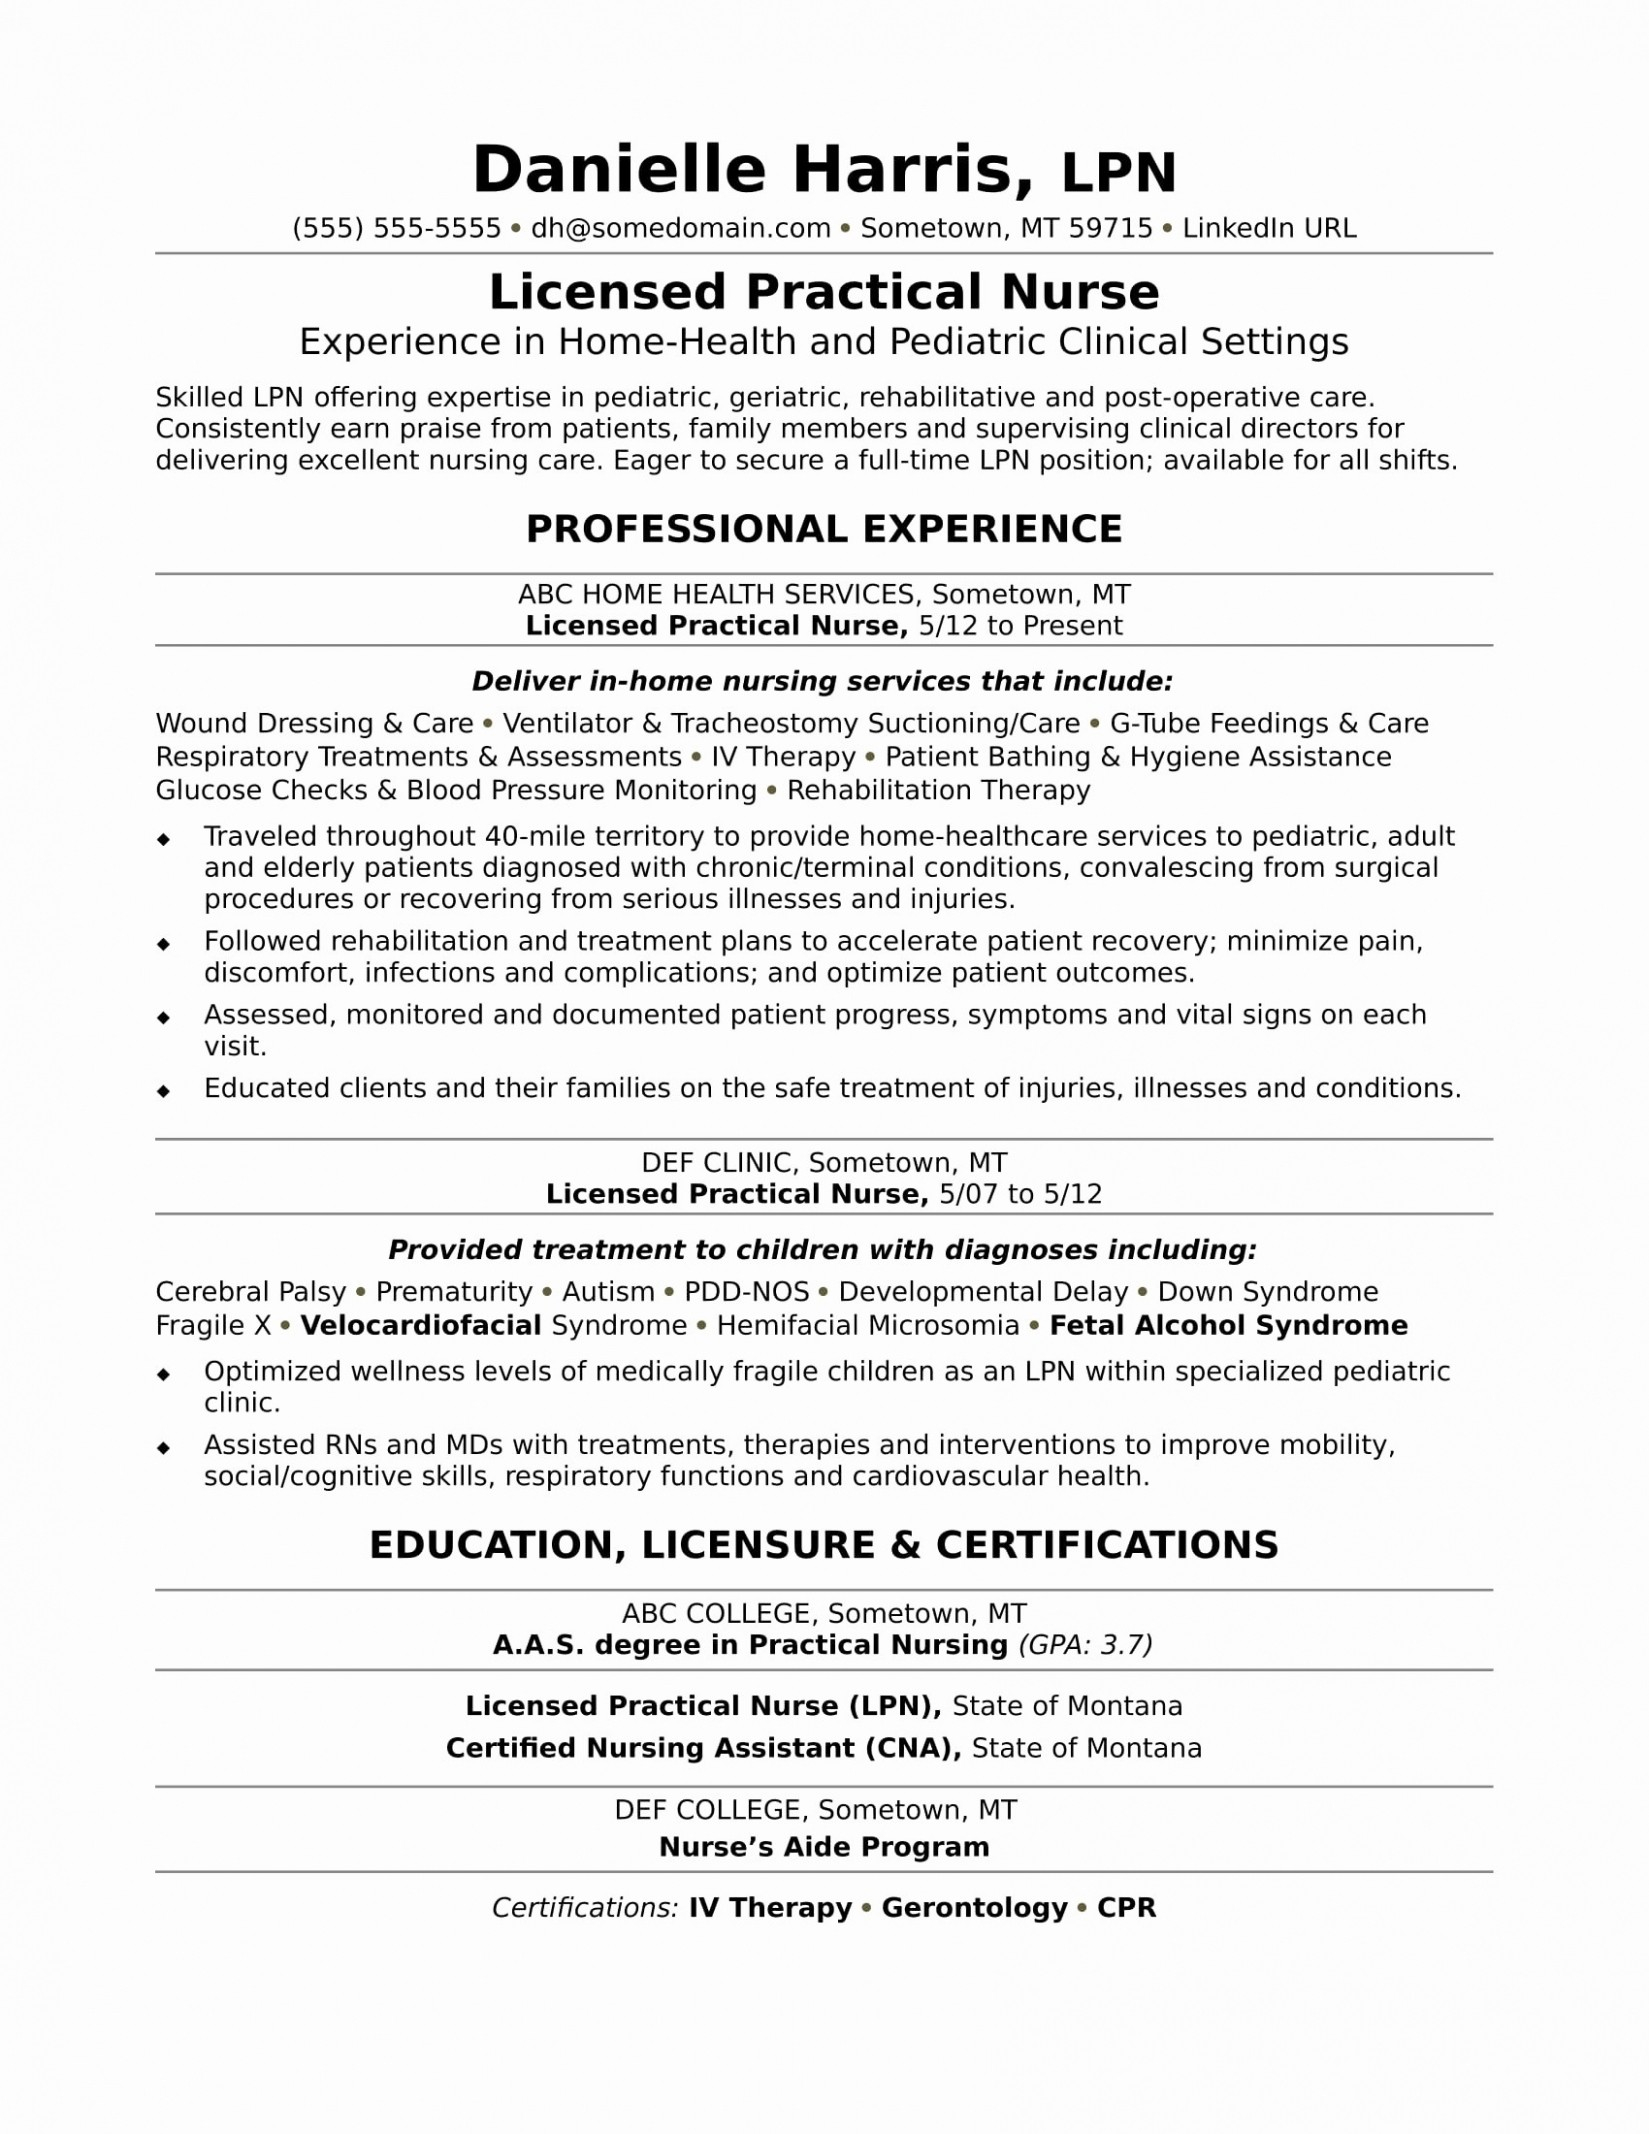 lpn nurse resume template Collection-Example Lpn Resume Inspirationa Elegant New Nurse Resume Awesome Nurse Resume 0d Wallpapers 42 1-d